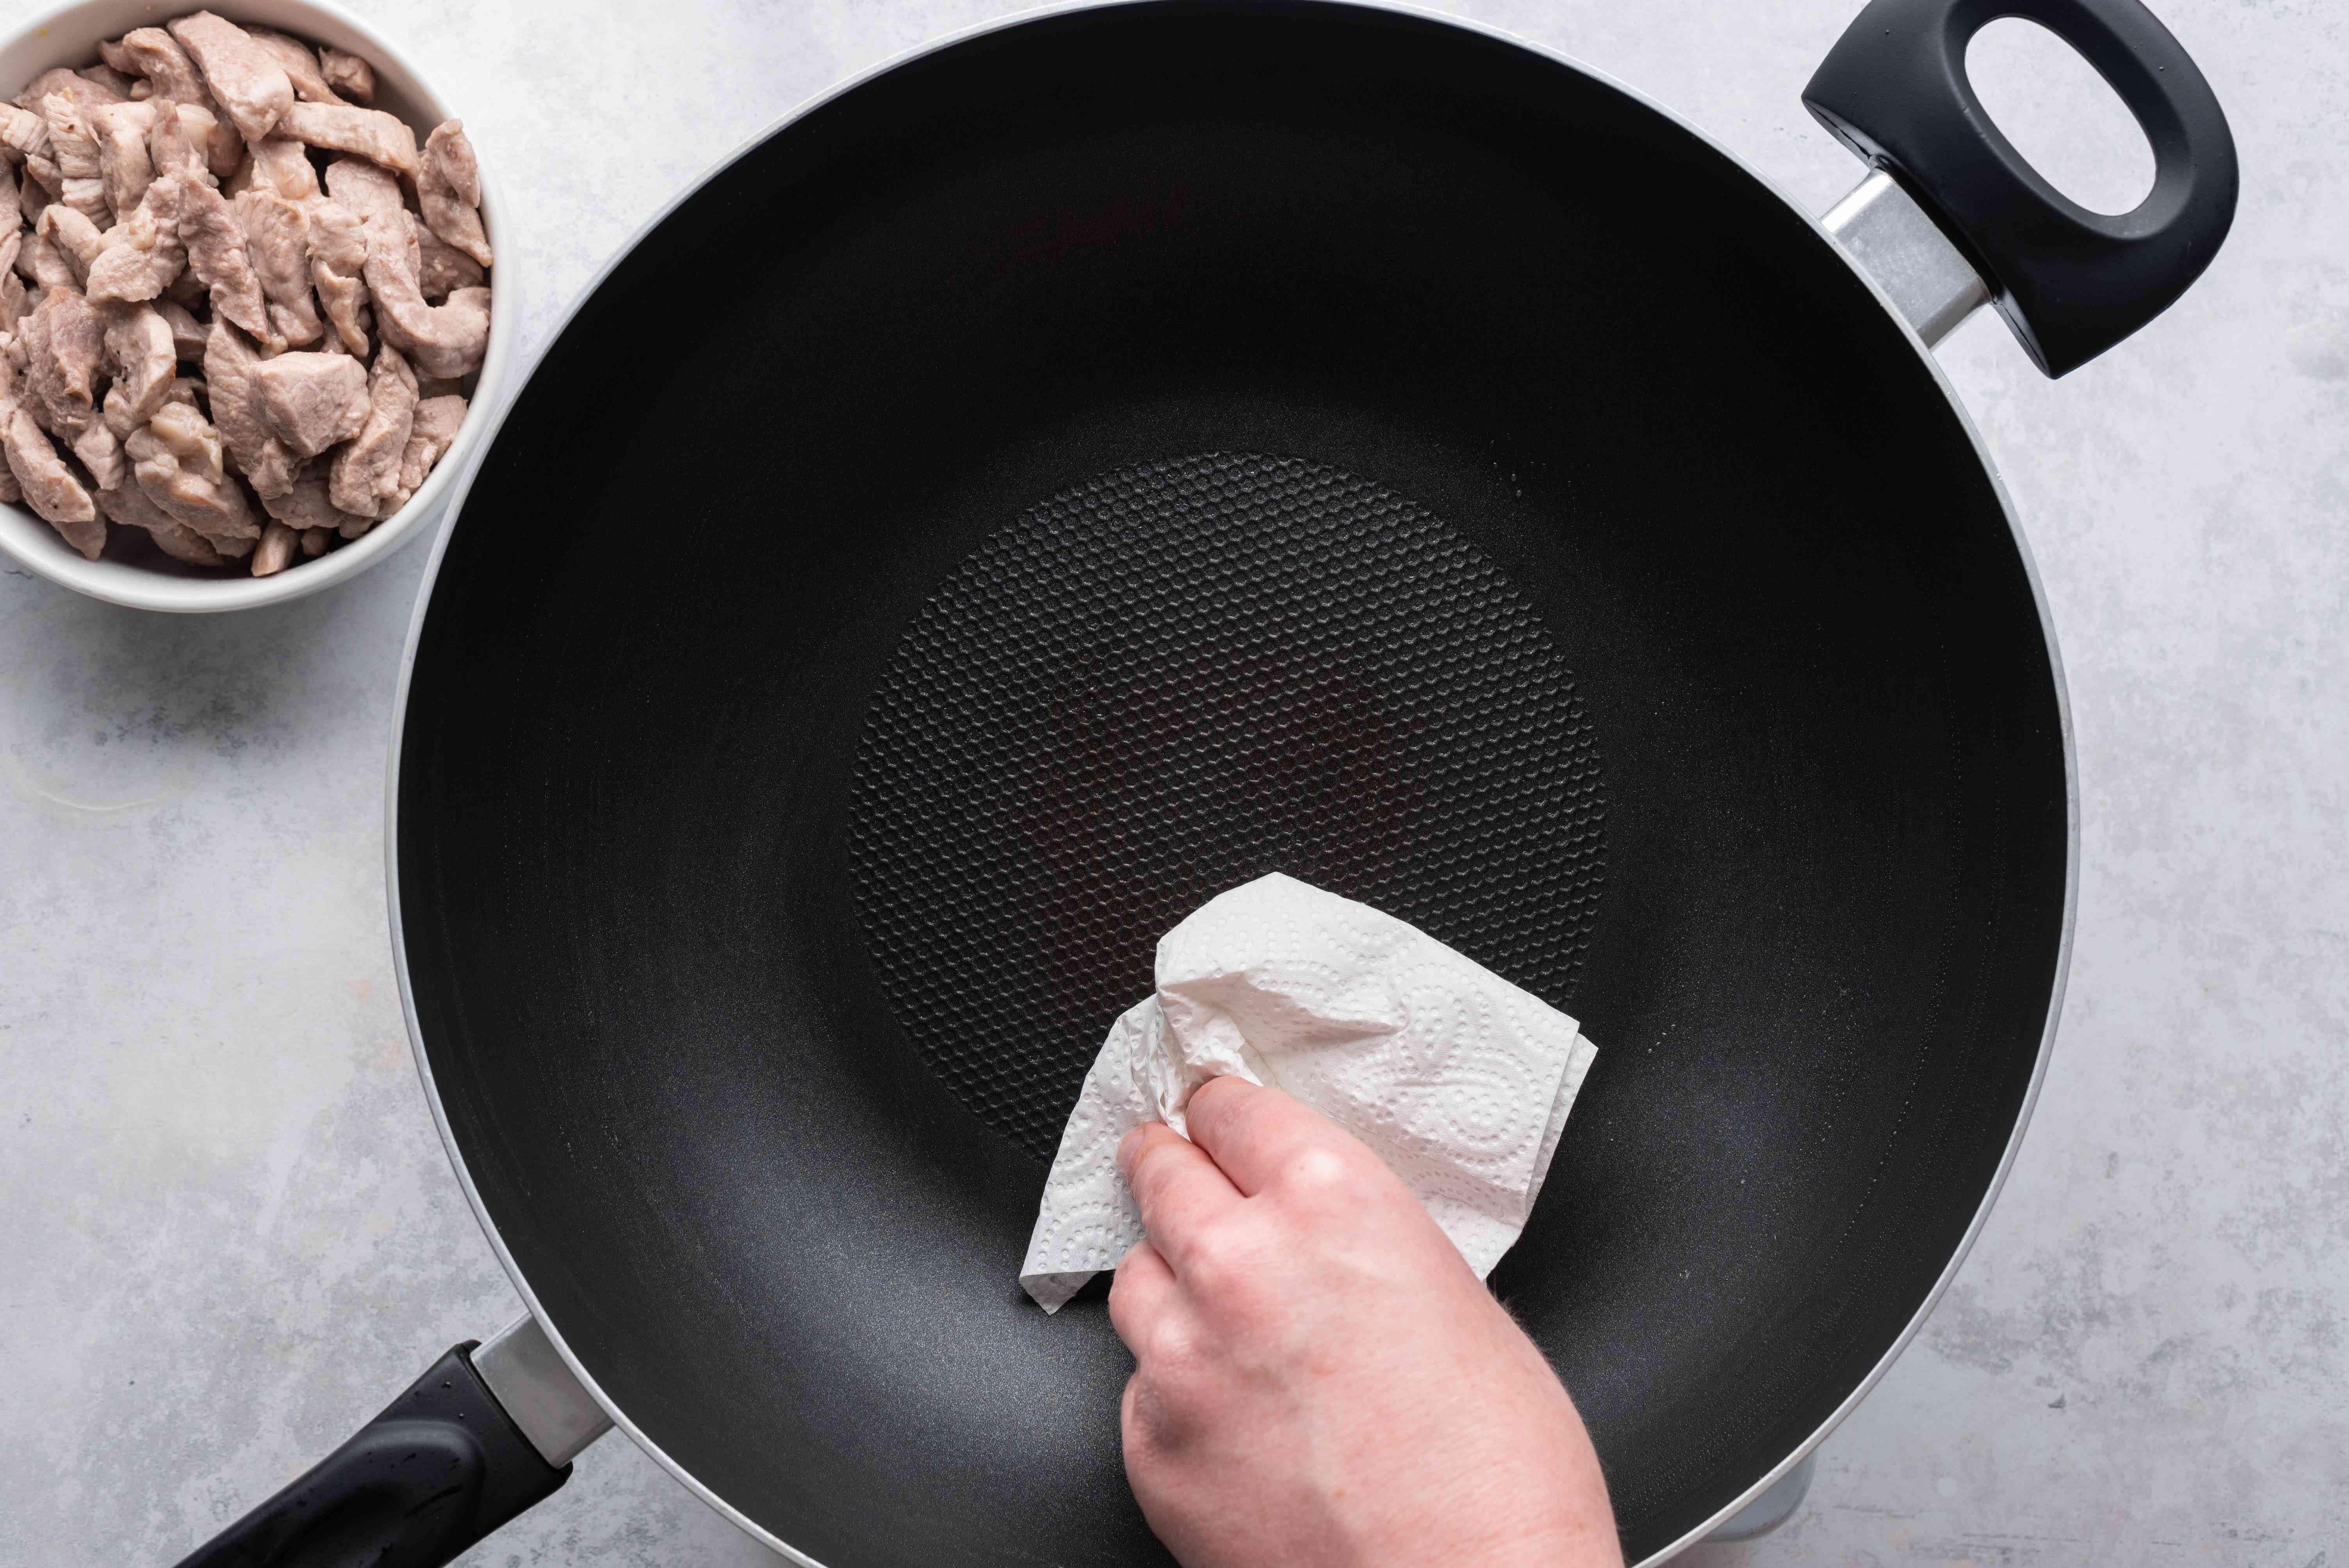 clean the pan